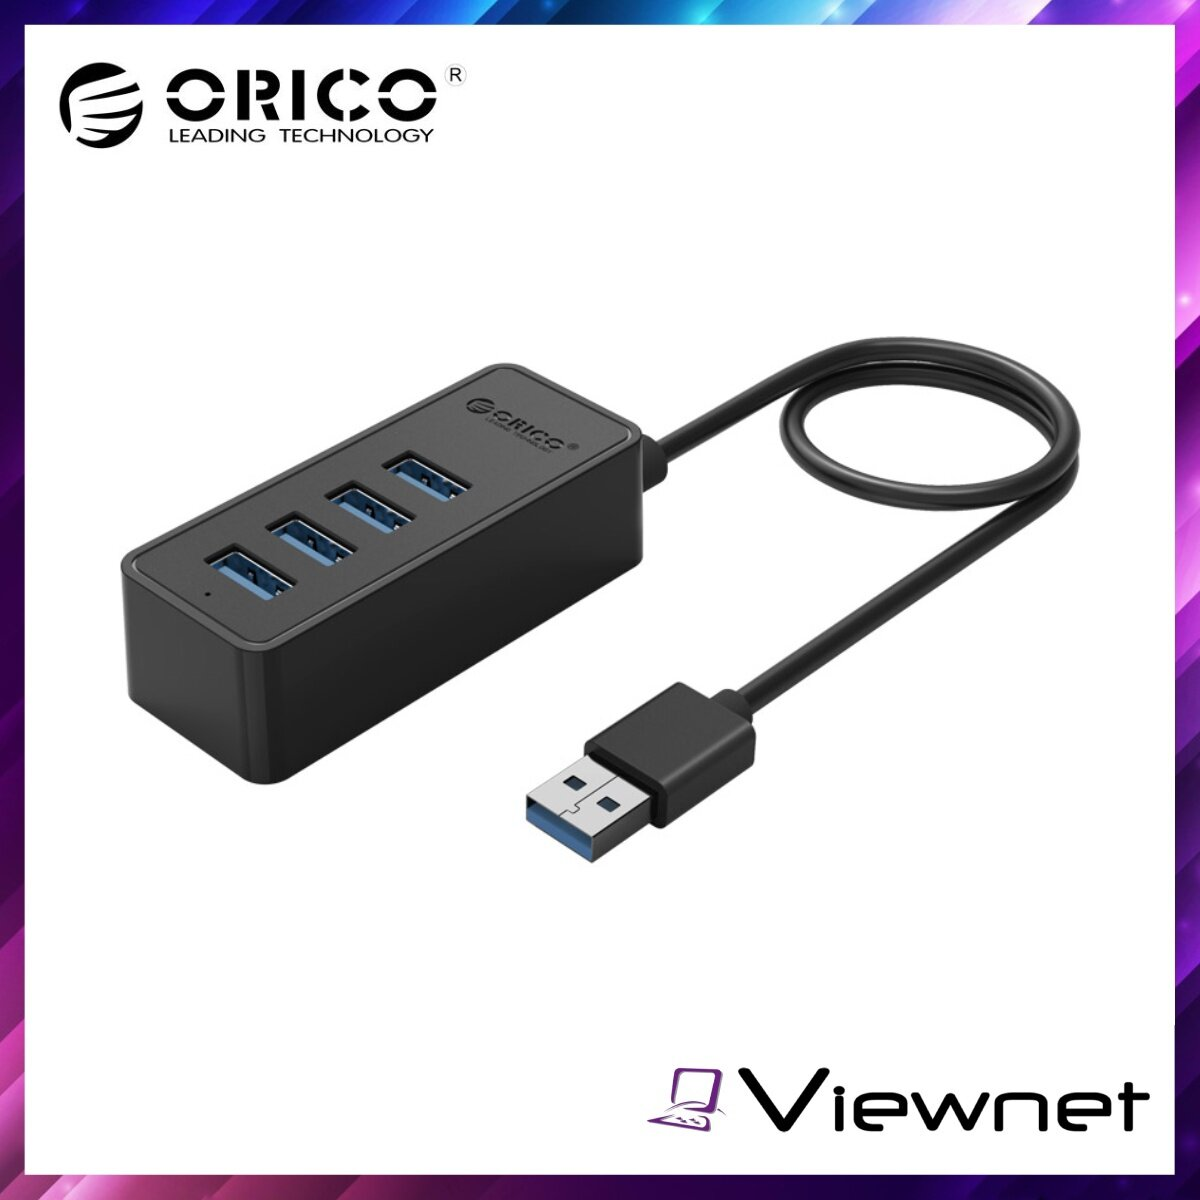 Orico 4-USB3.0 Hub With Micro USB Input (ORICO W5P-U3-30), External Power Supply, 4 Ports Operating Simultaneously, Fast Speed Data Transfer Rate, Black